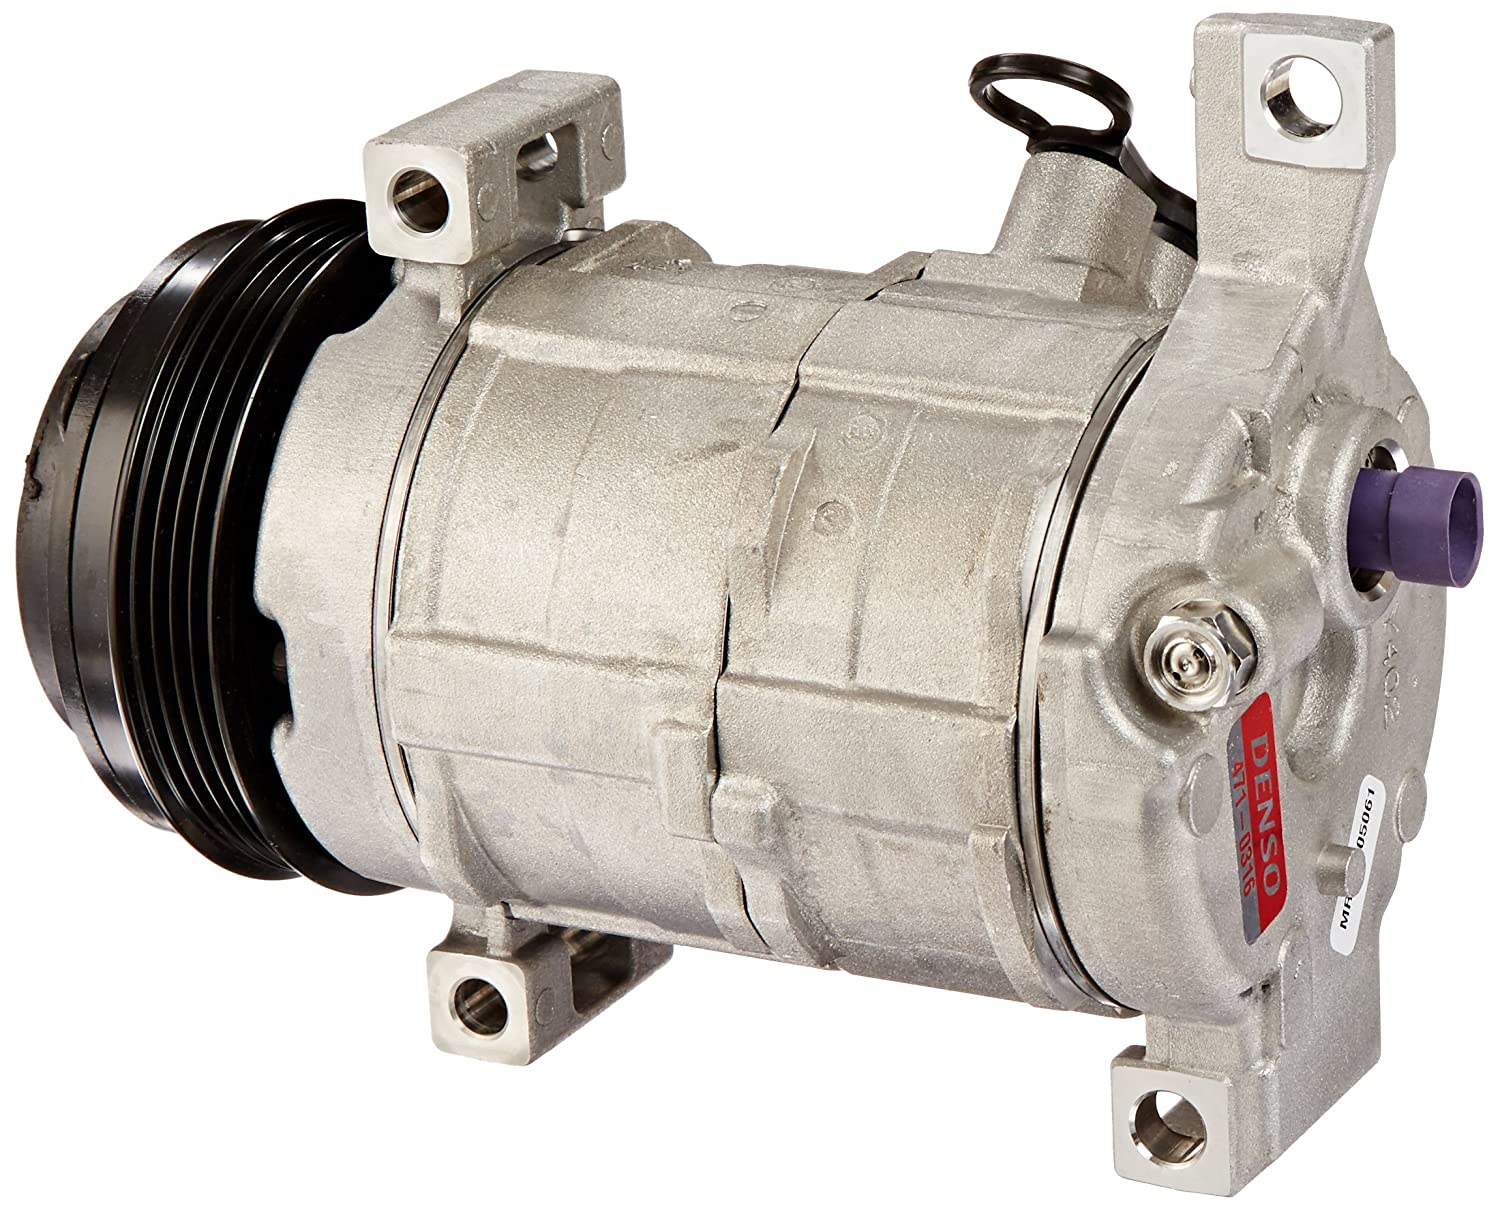 Denso 471 0316 New Compressor With Clutch Automotive 2003 Chevy Tahoe Ac System